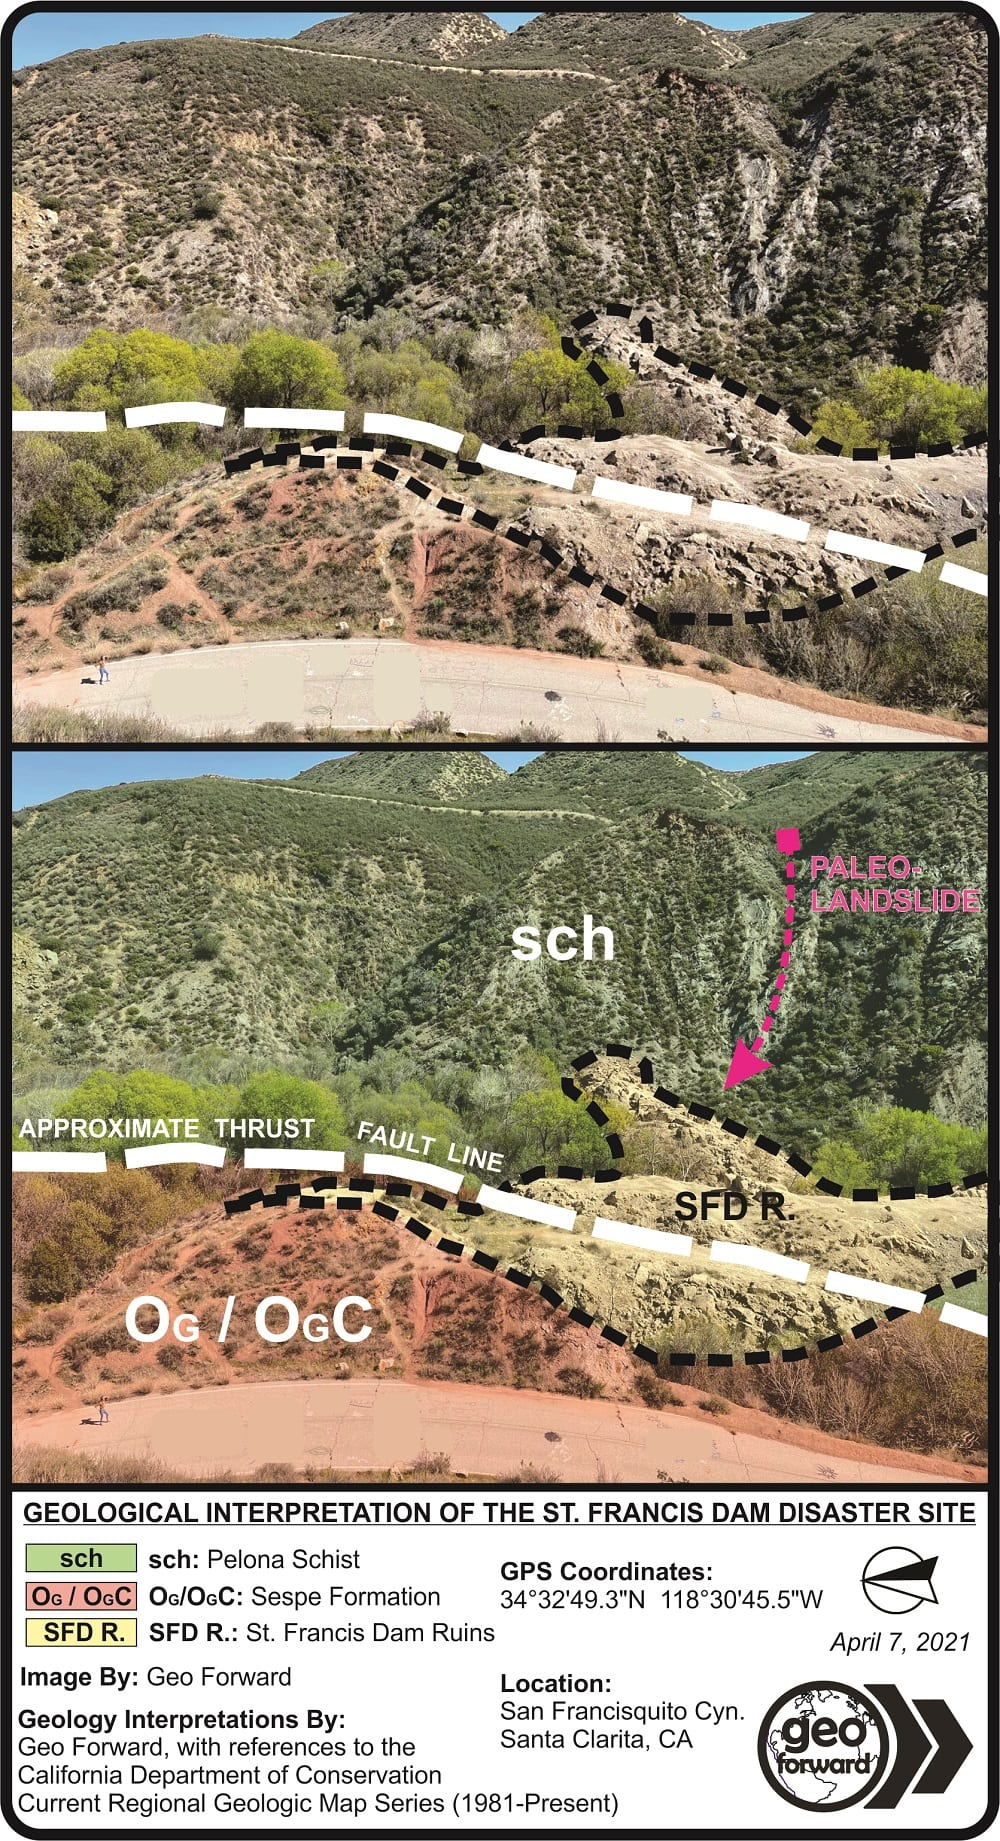 Geologic Interpretations of the St. Francis Dam Disaster Site: Showing the Sespe Formation, Pelona Schist and Thrust Fault of San Francisquito Canyon Creek.